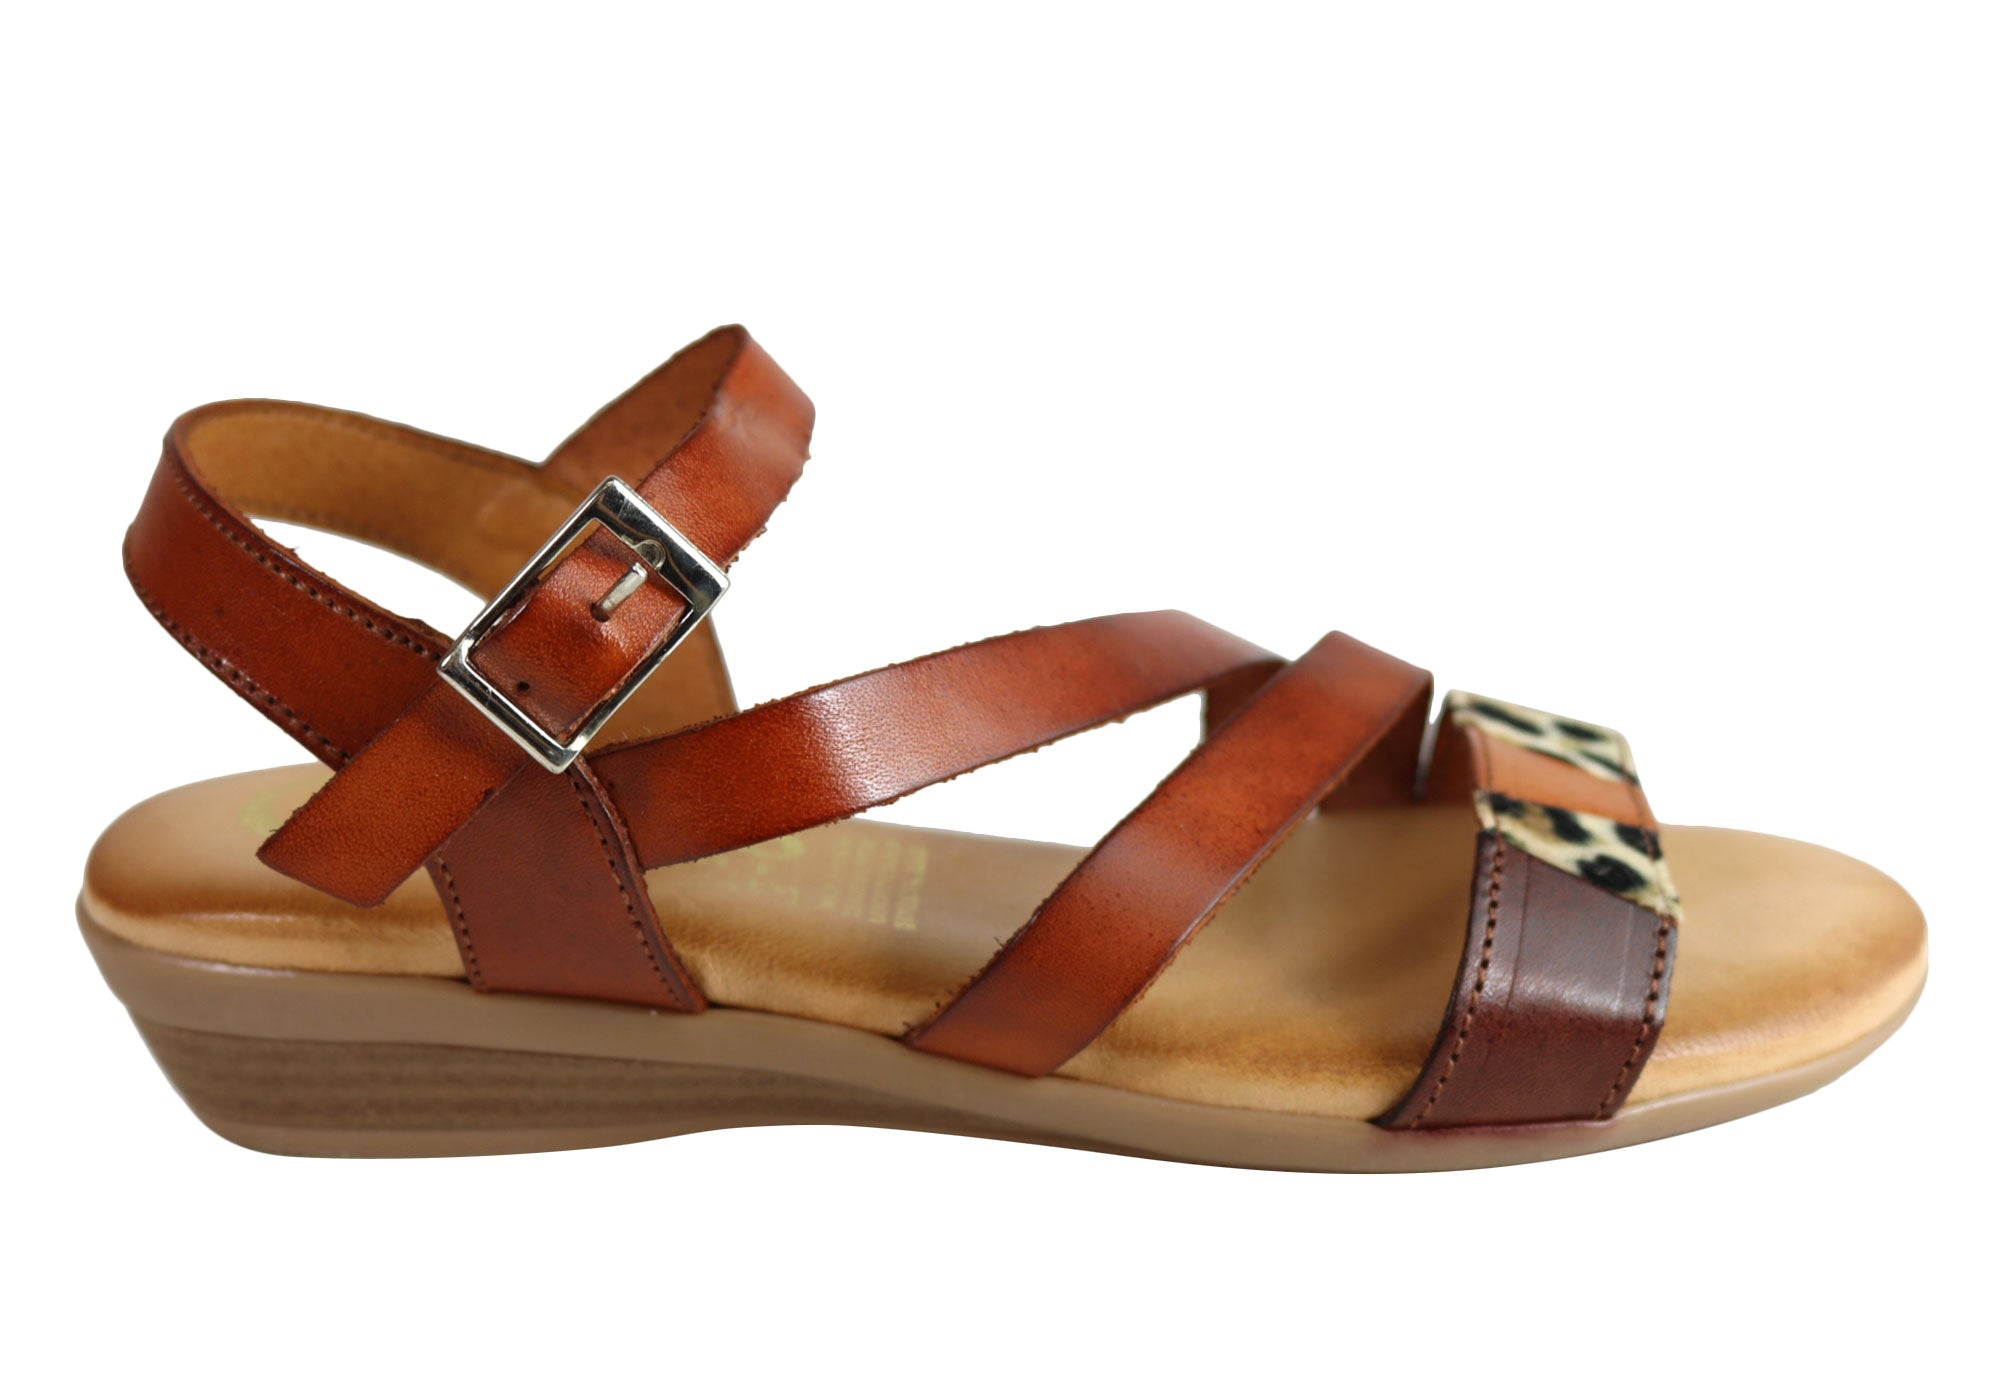 fcc001def00 Cabello Comfort 718 Womens Comfortable Leather Sandals Made In Spain ...